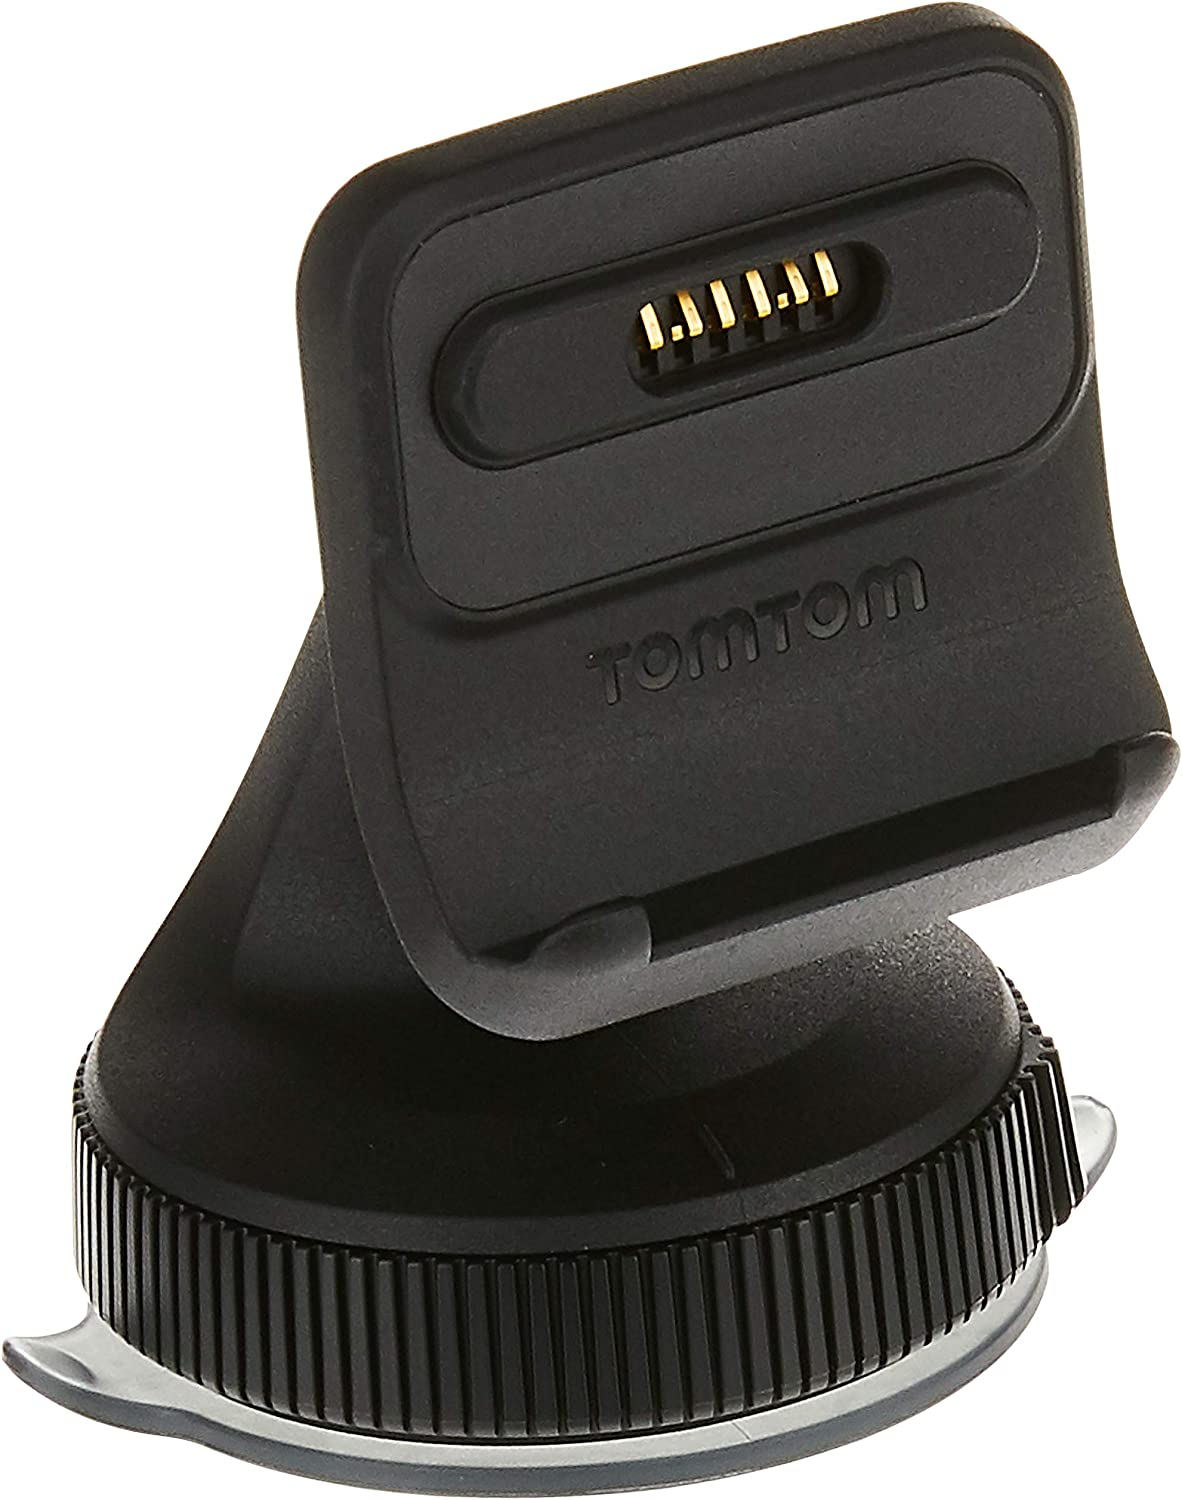 Year-end gift TomTom 9UUB.001.40 Gps Click Ranking TOP13 Go Mount Black 620 - 520 for